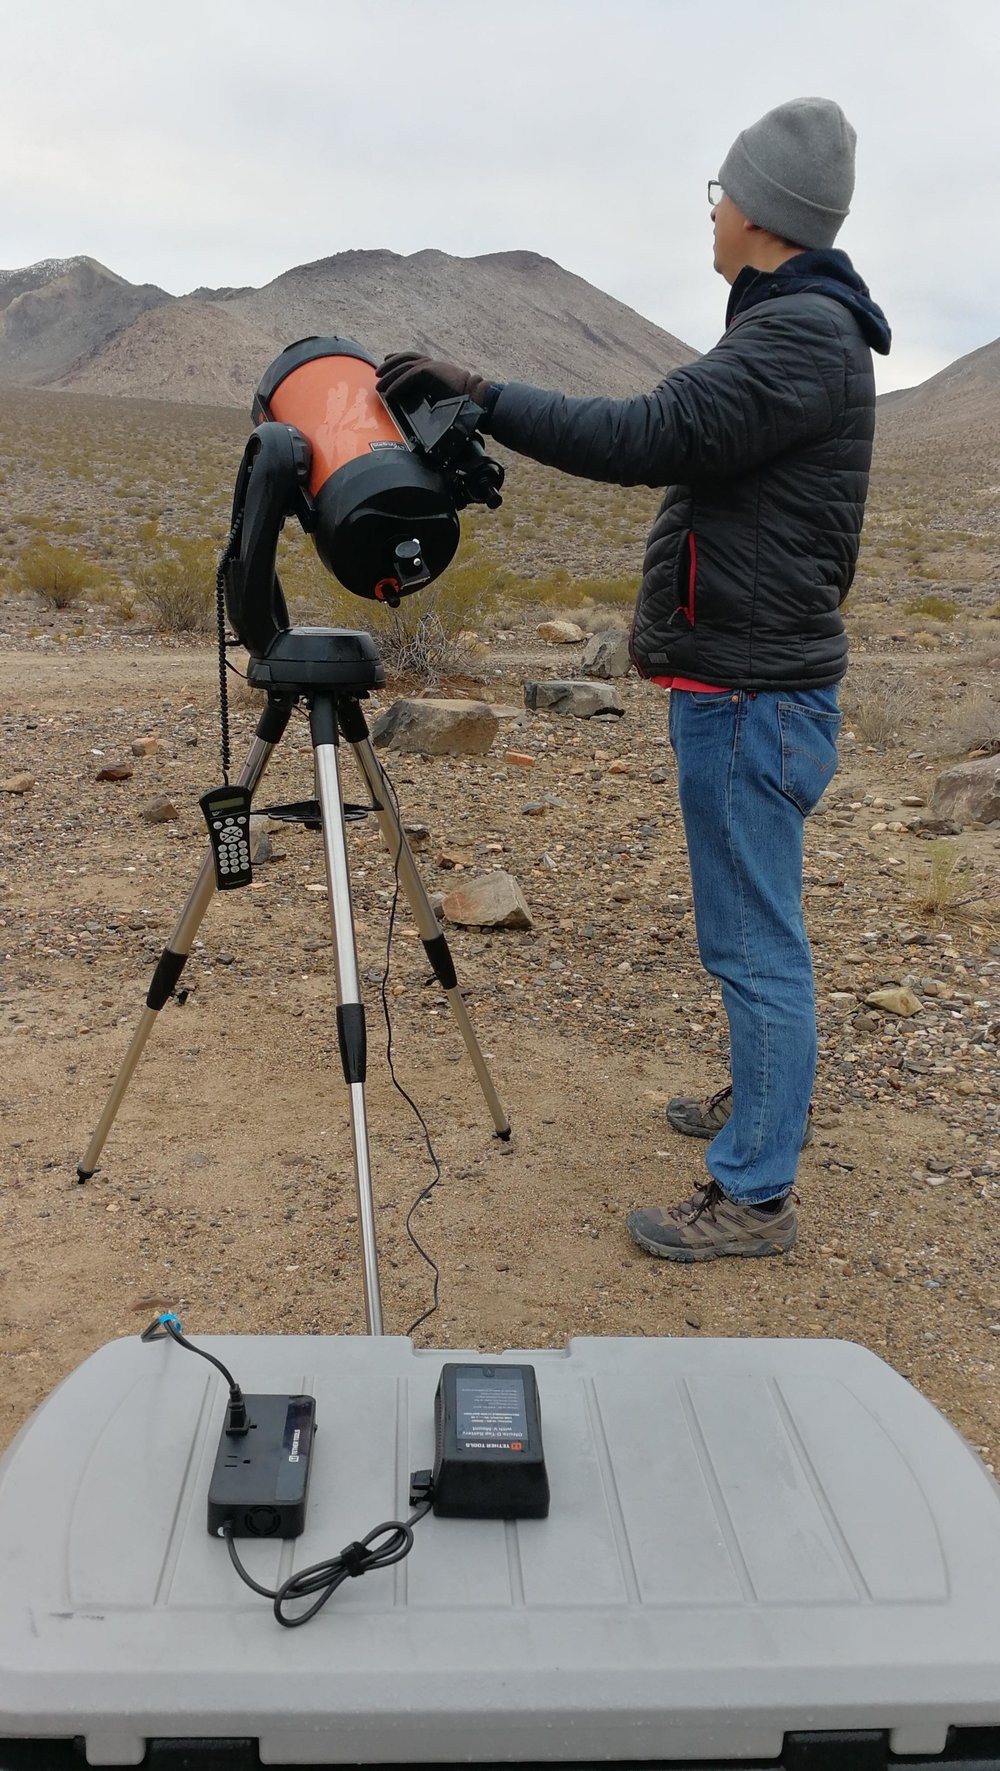 Astronomer Tyler Nordgren powered his telescope with one of the  ONsite  recharging packs that Tether Tools provided for our Death Valley backcountry workshop.